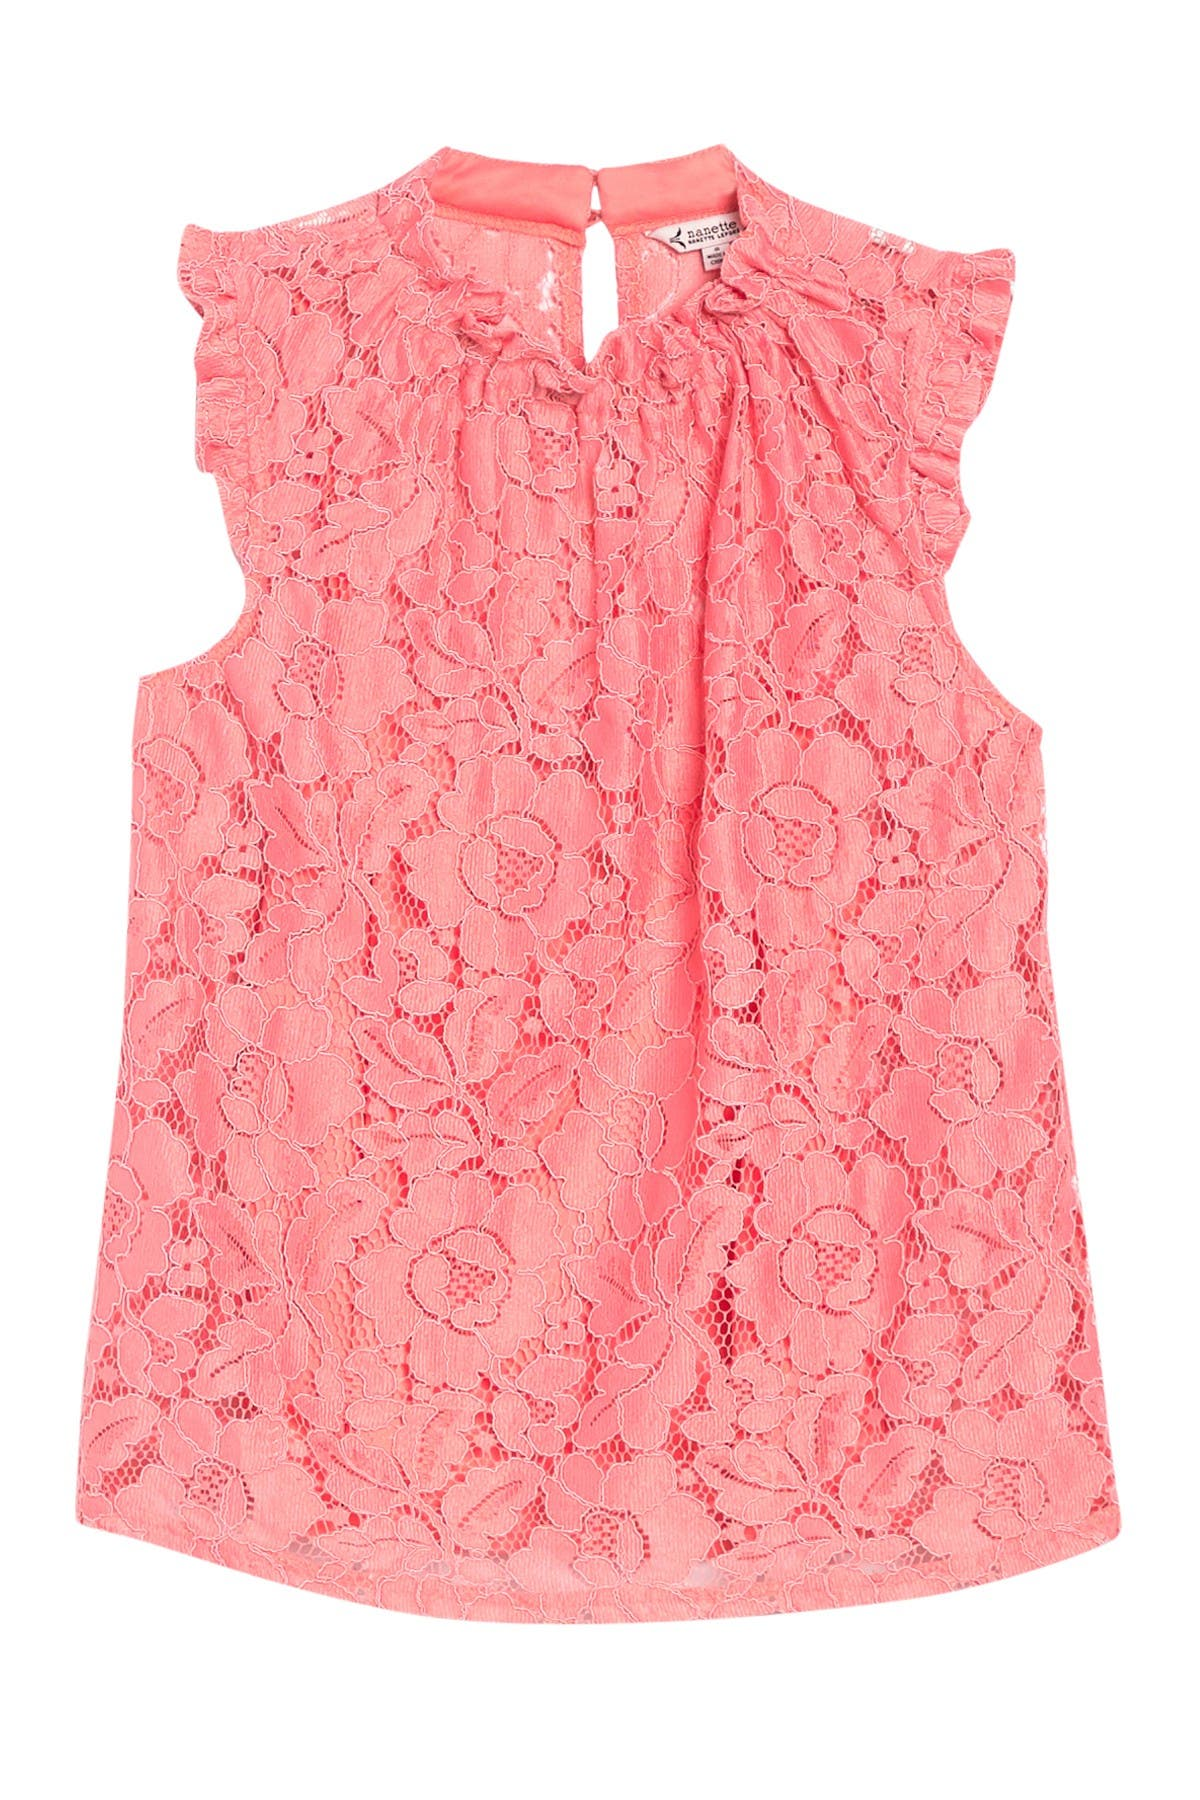 Image of NANETTE nanette lepore Floral Lace Shirred Ruffle Blouse